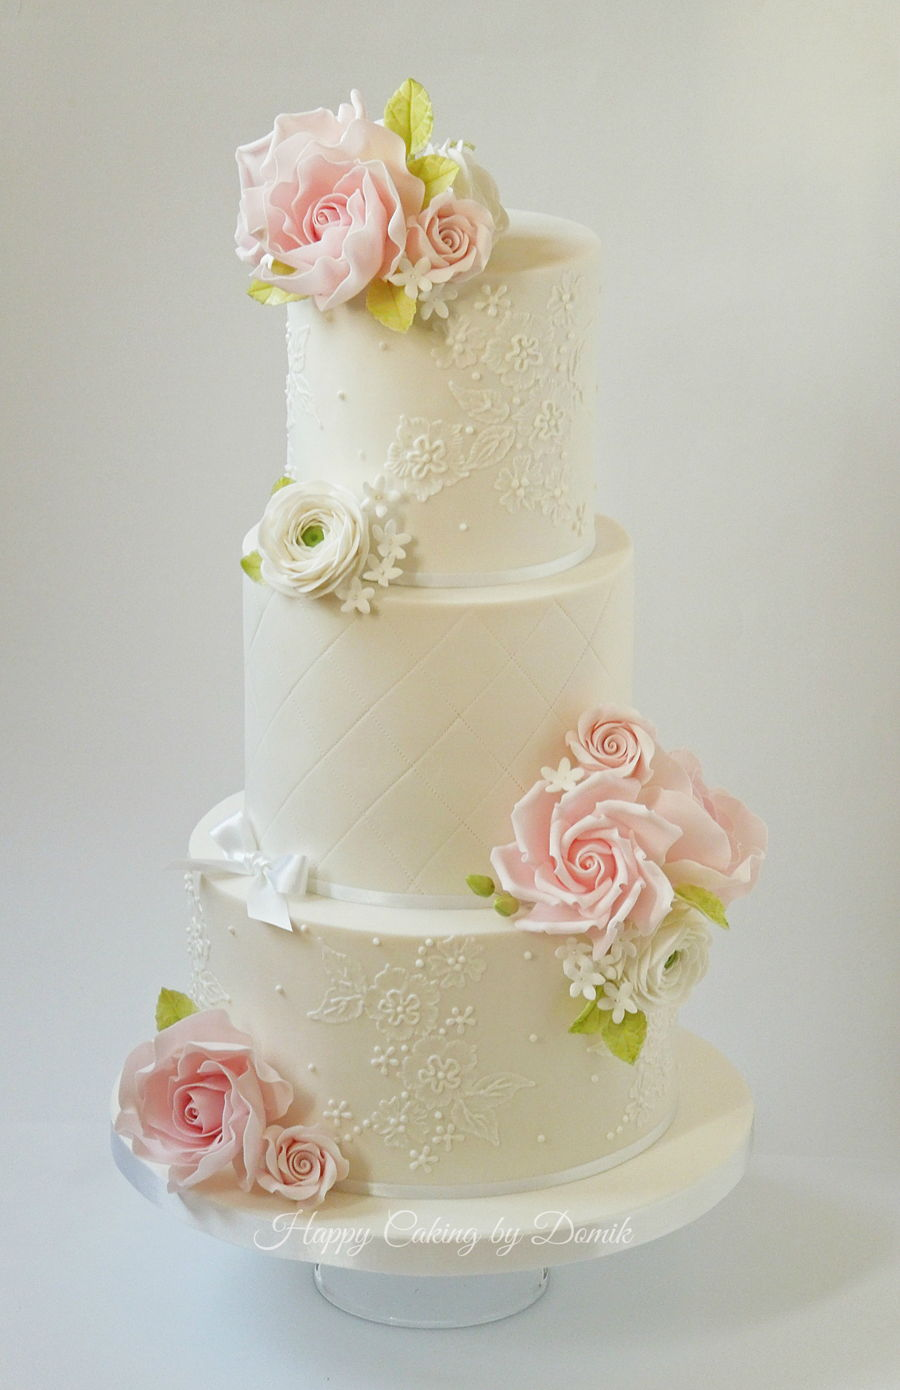 Wedding Cake With Pink Roses Cakecentral Com